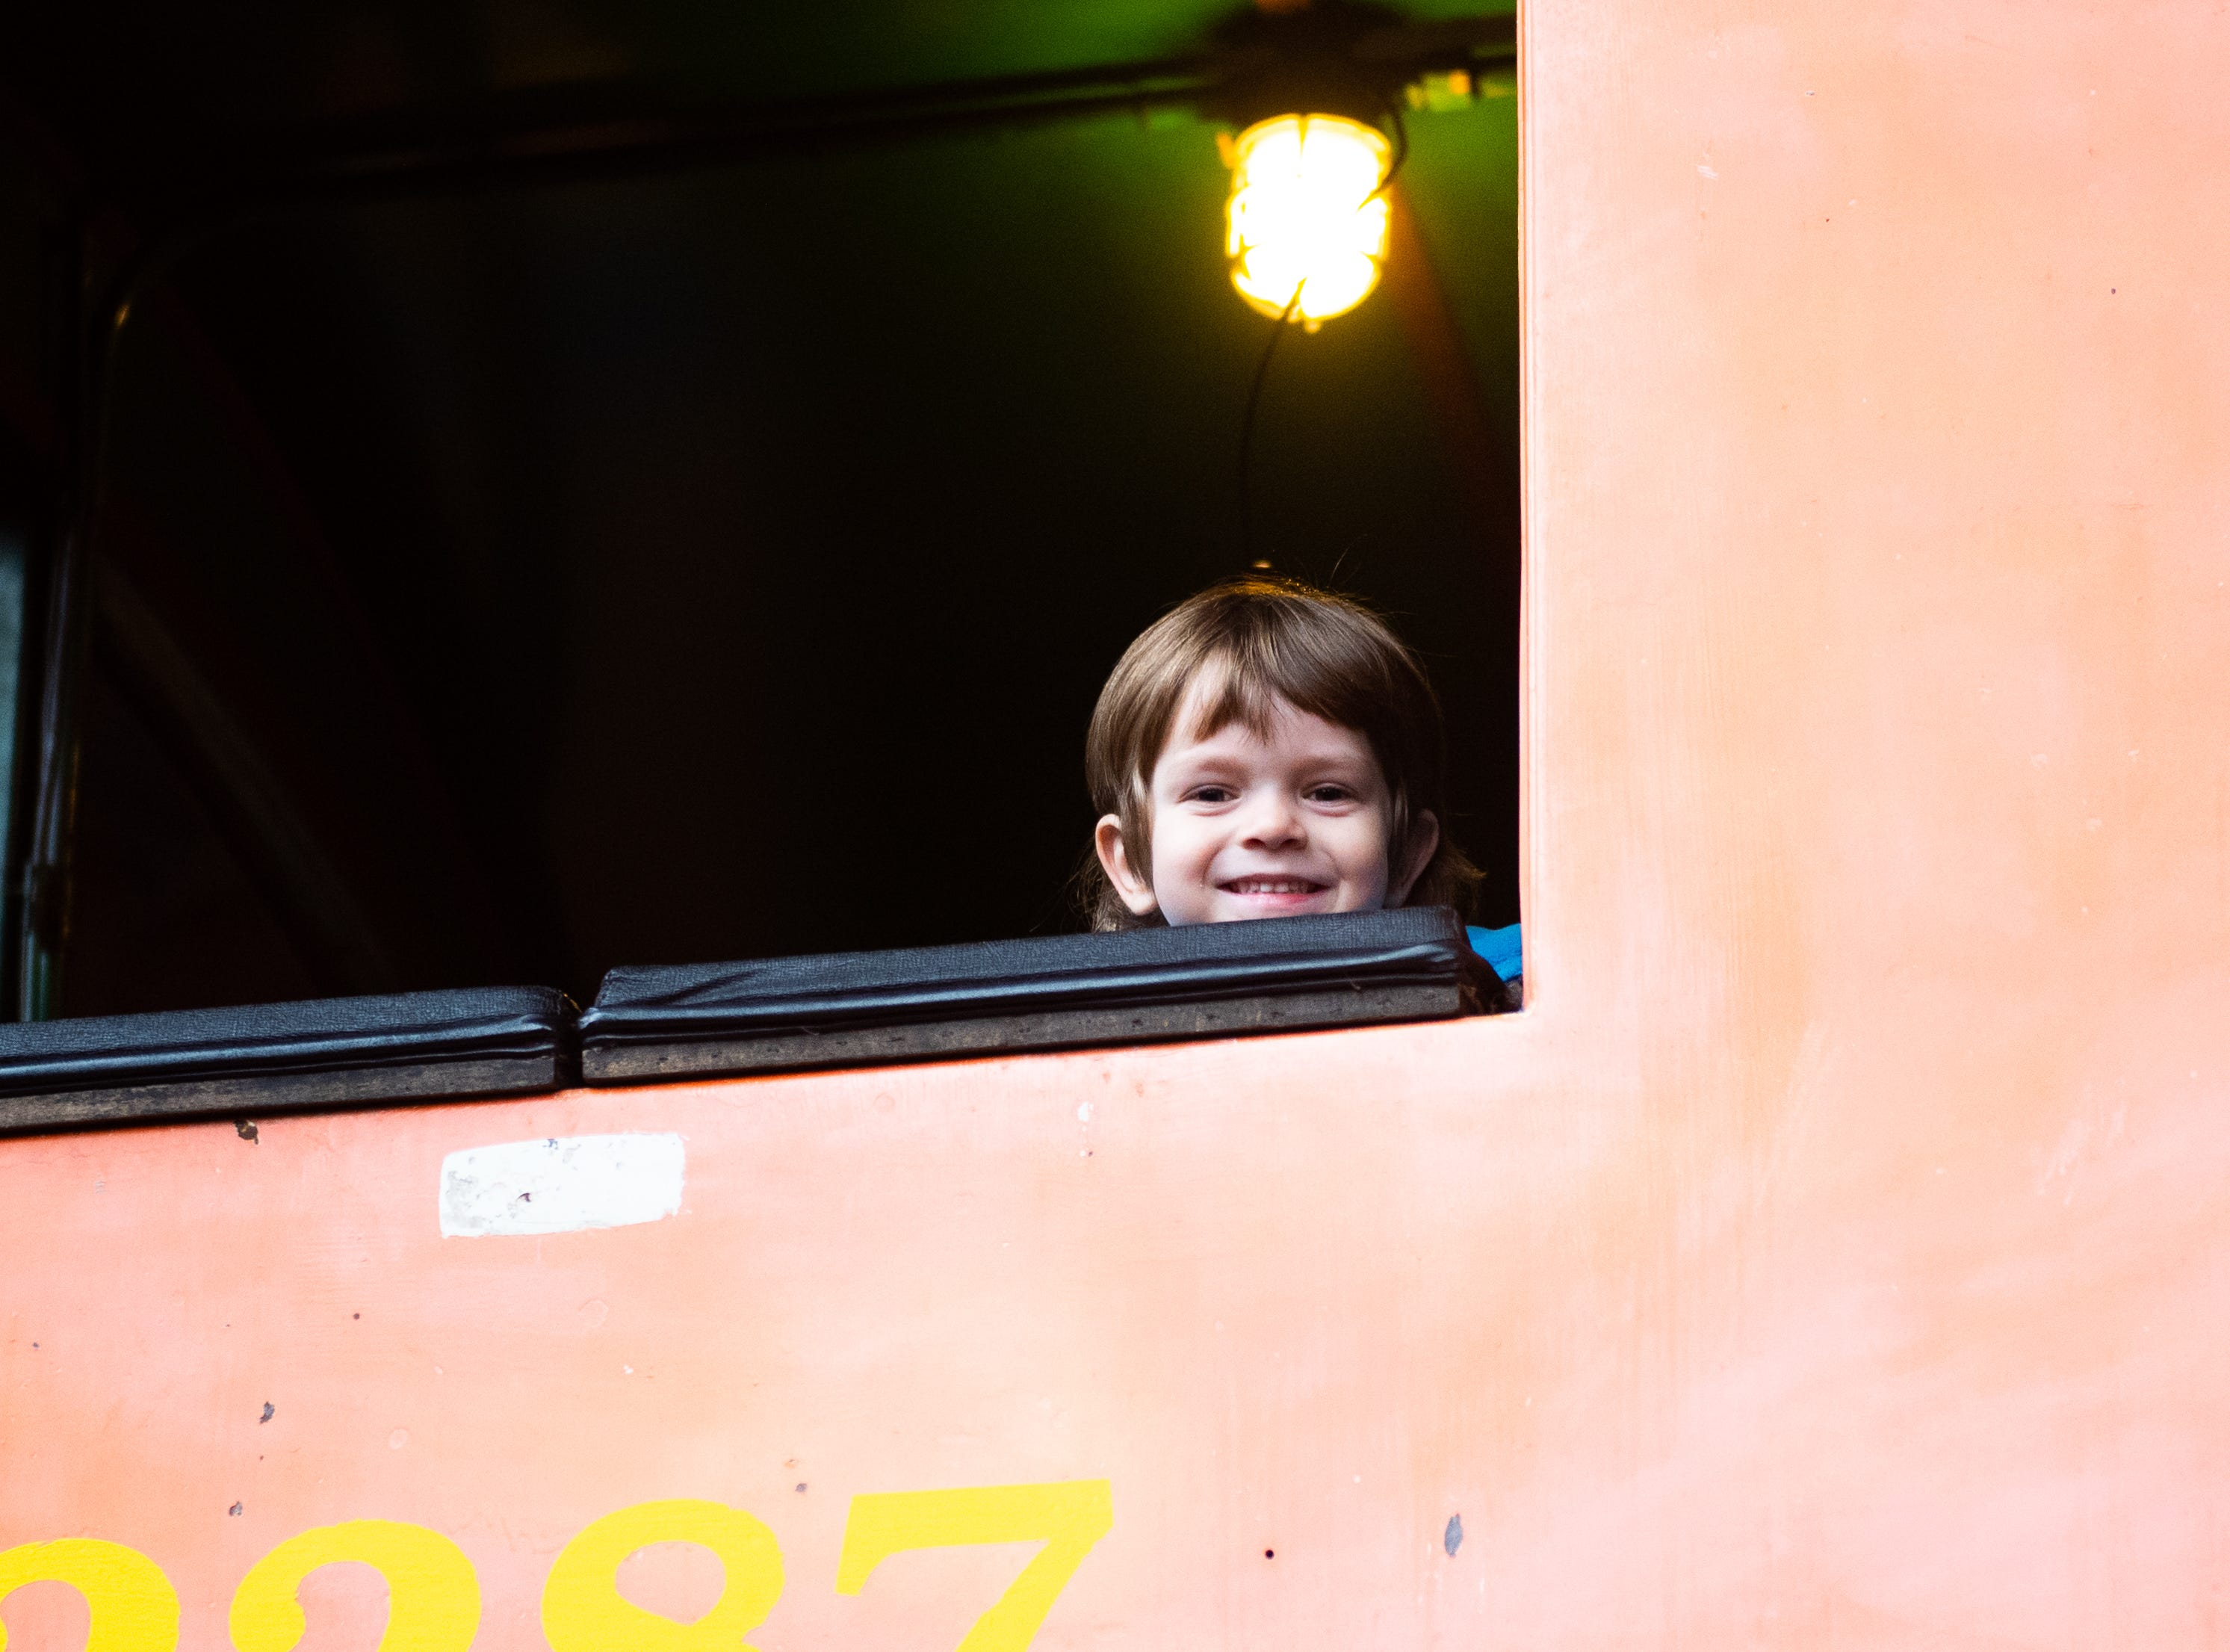 Garon Erdenbrack, 4, of Springettsbury Township pokes his head out of a life sized train, his favorite exhibit, December 28, 2018.